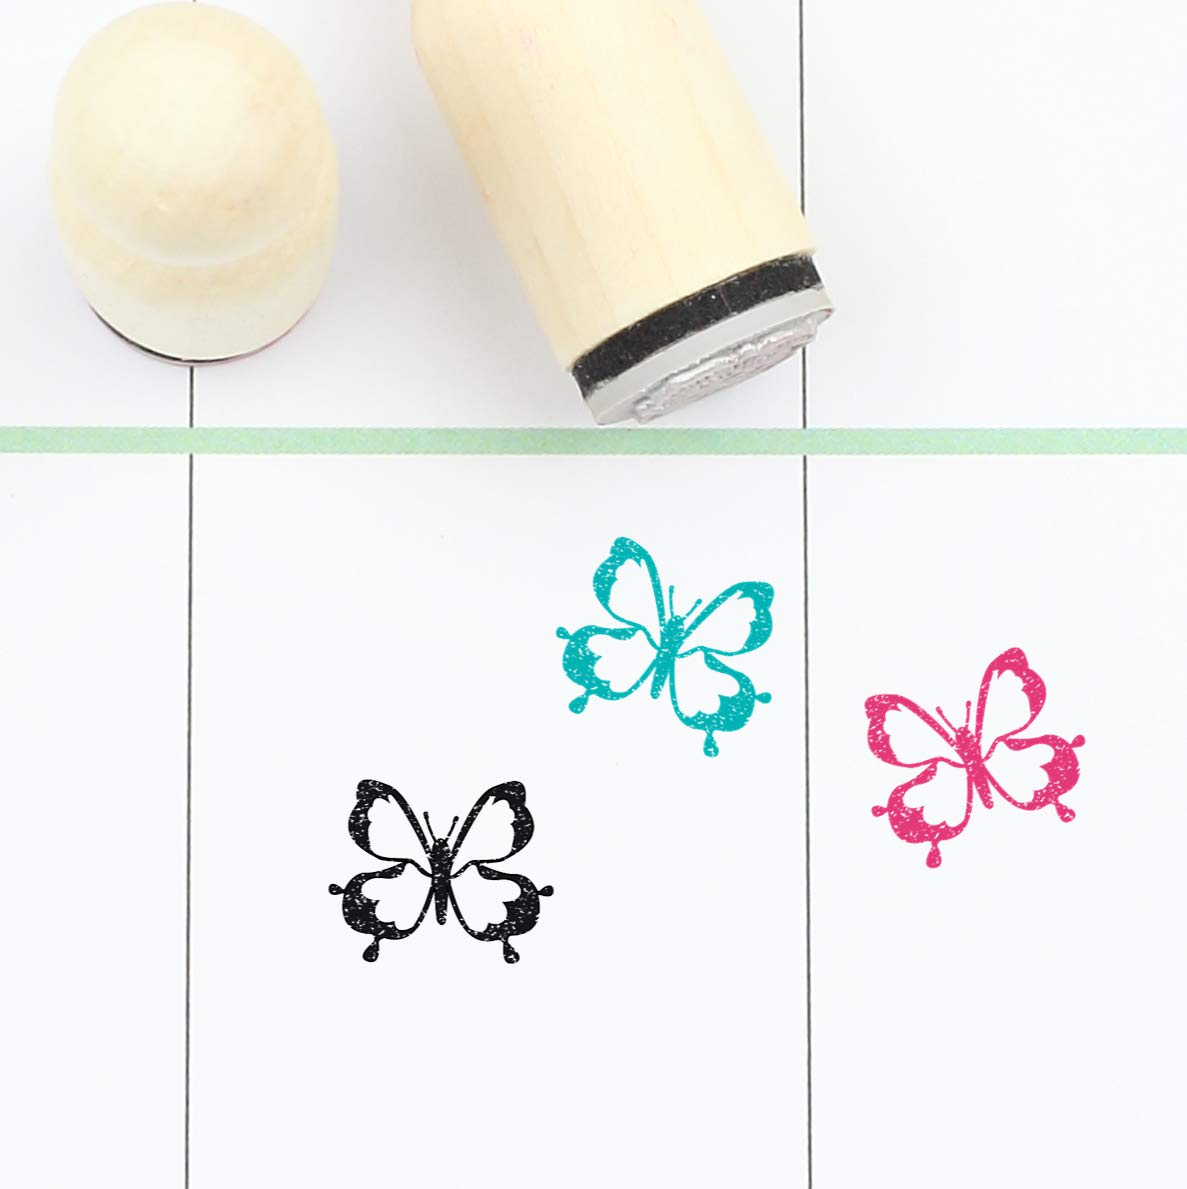 Insects Stamp 20mm Mini Stamps S147 Planner Stamp Butterfly Rubber Stamp 16mm